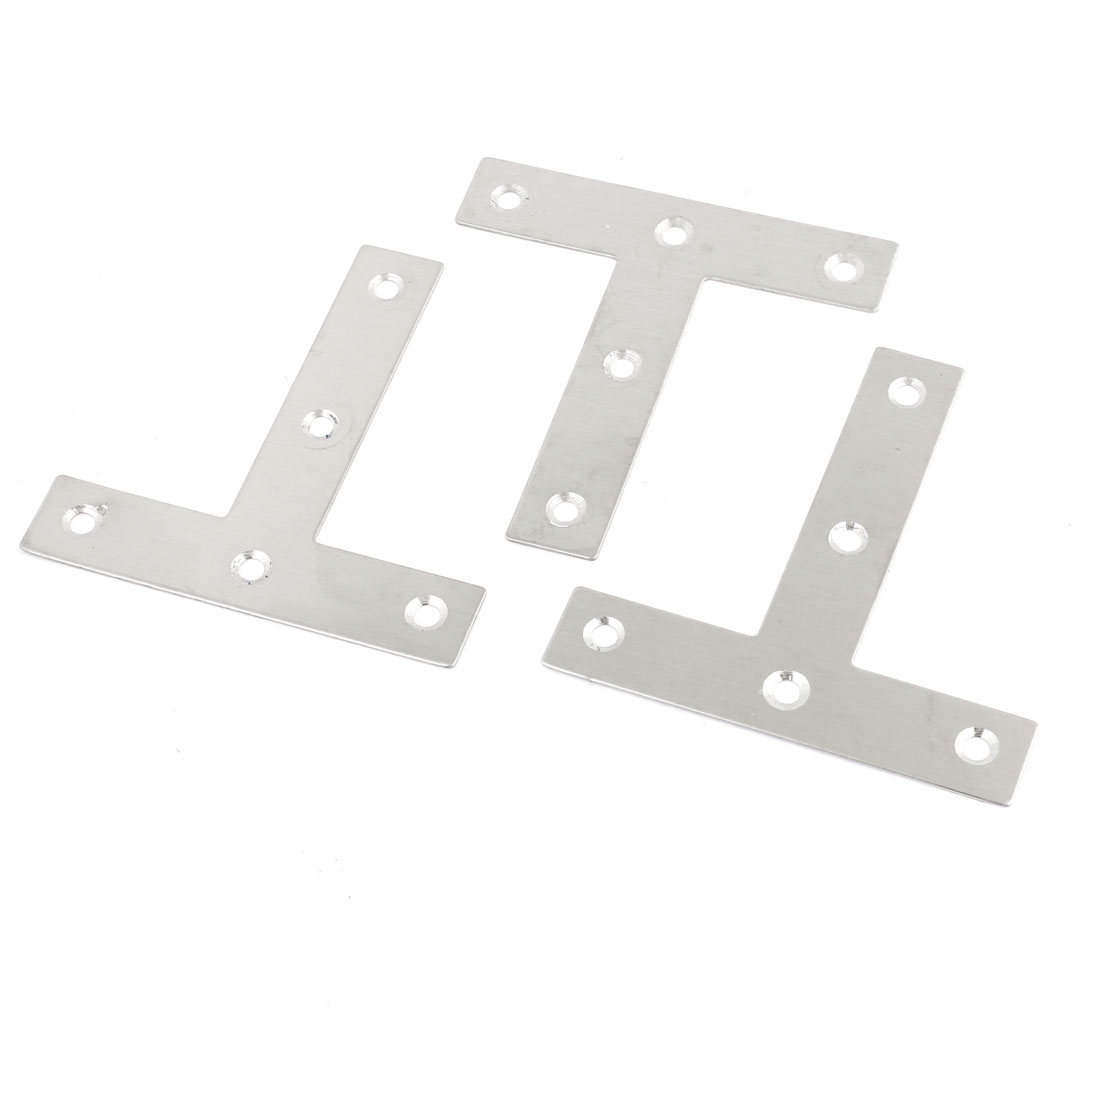 80mm x 80mm Stainless Steel T Shape Angle Bracket 3pcs